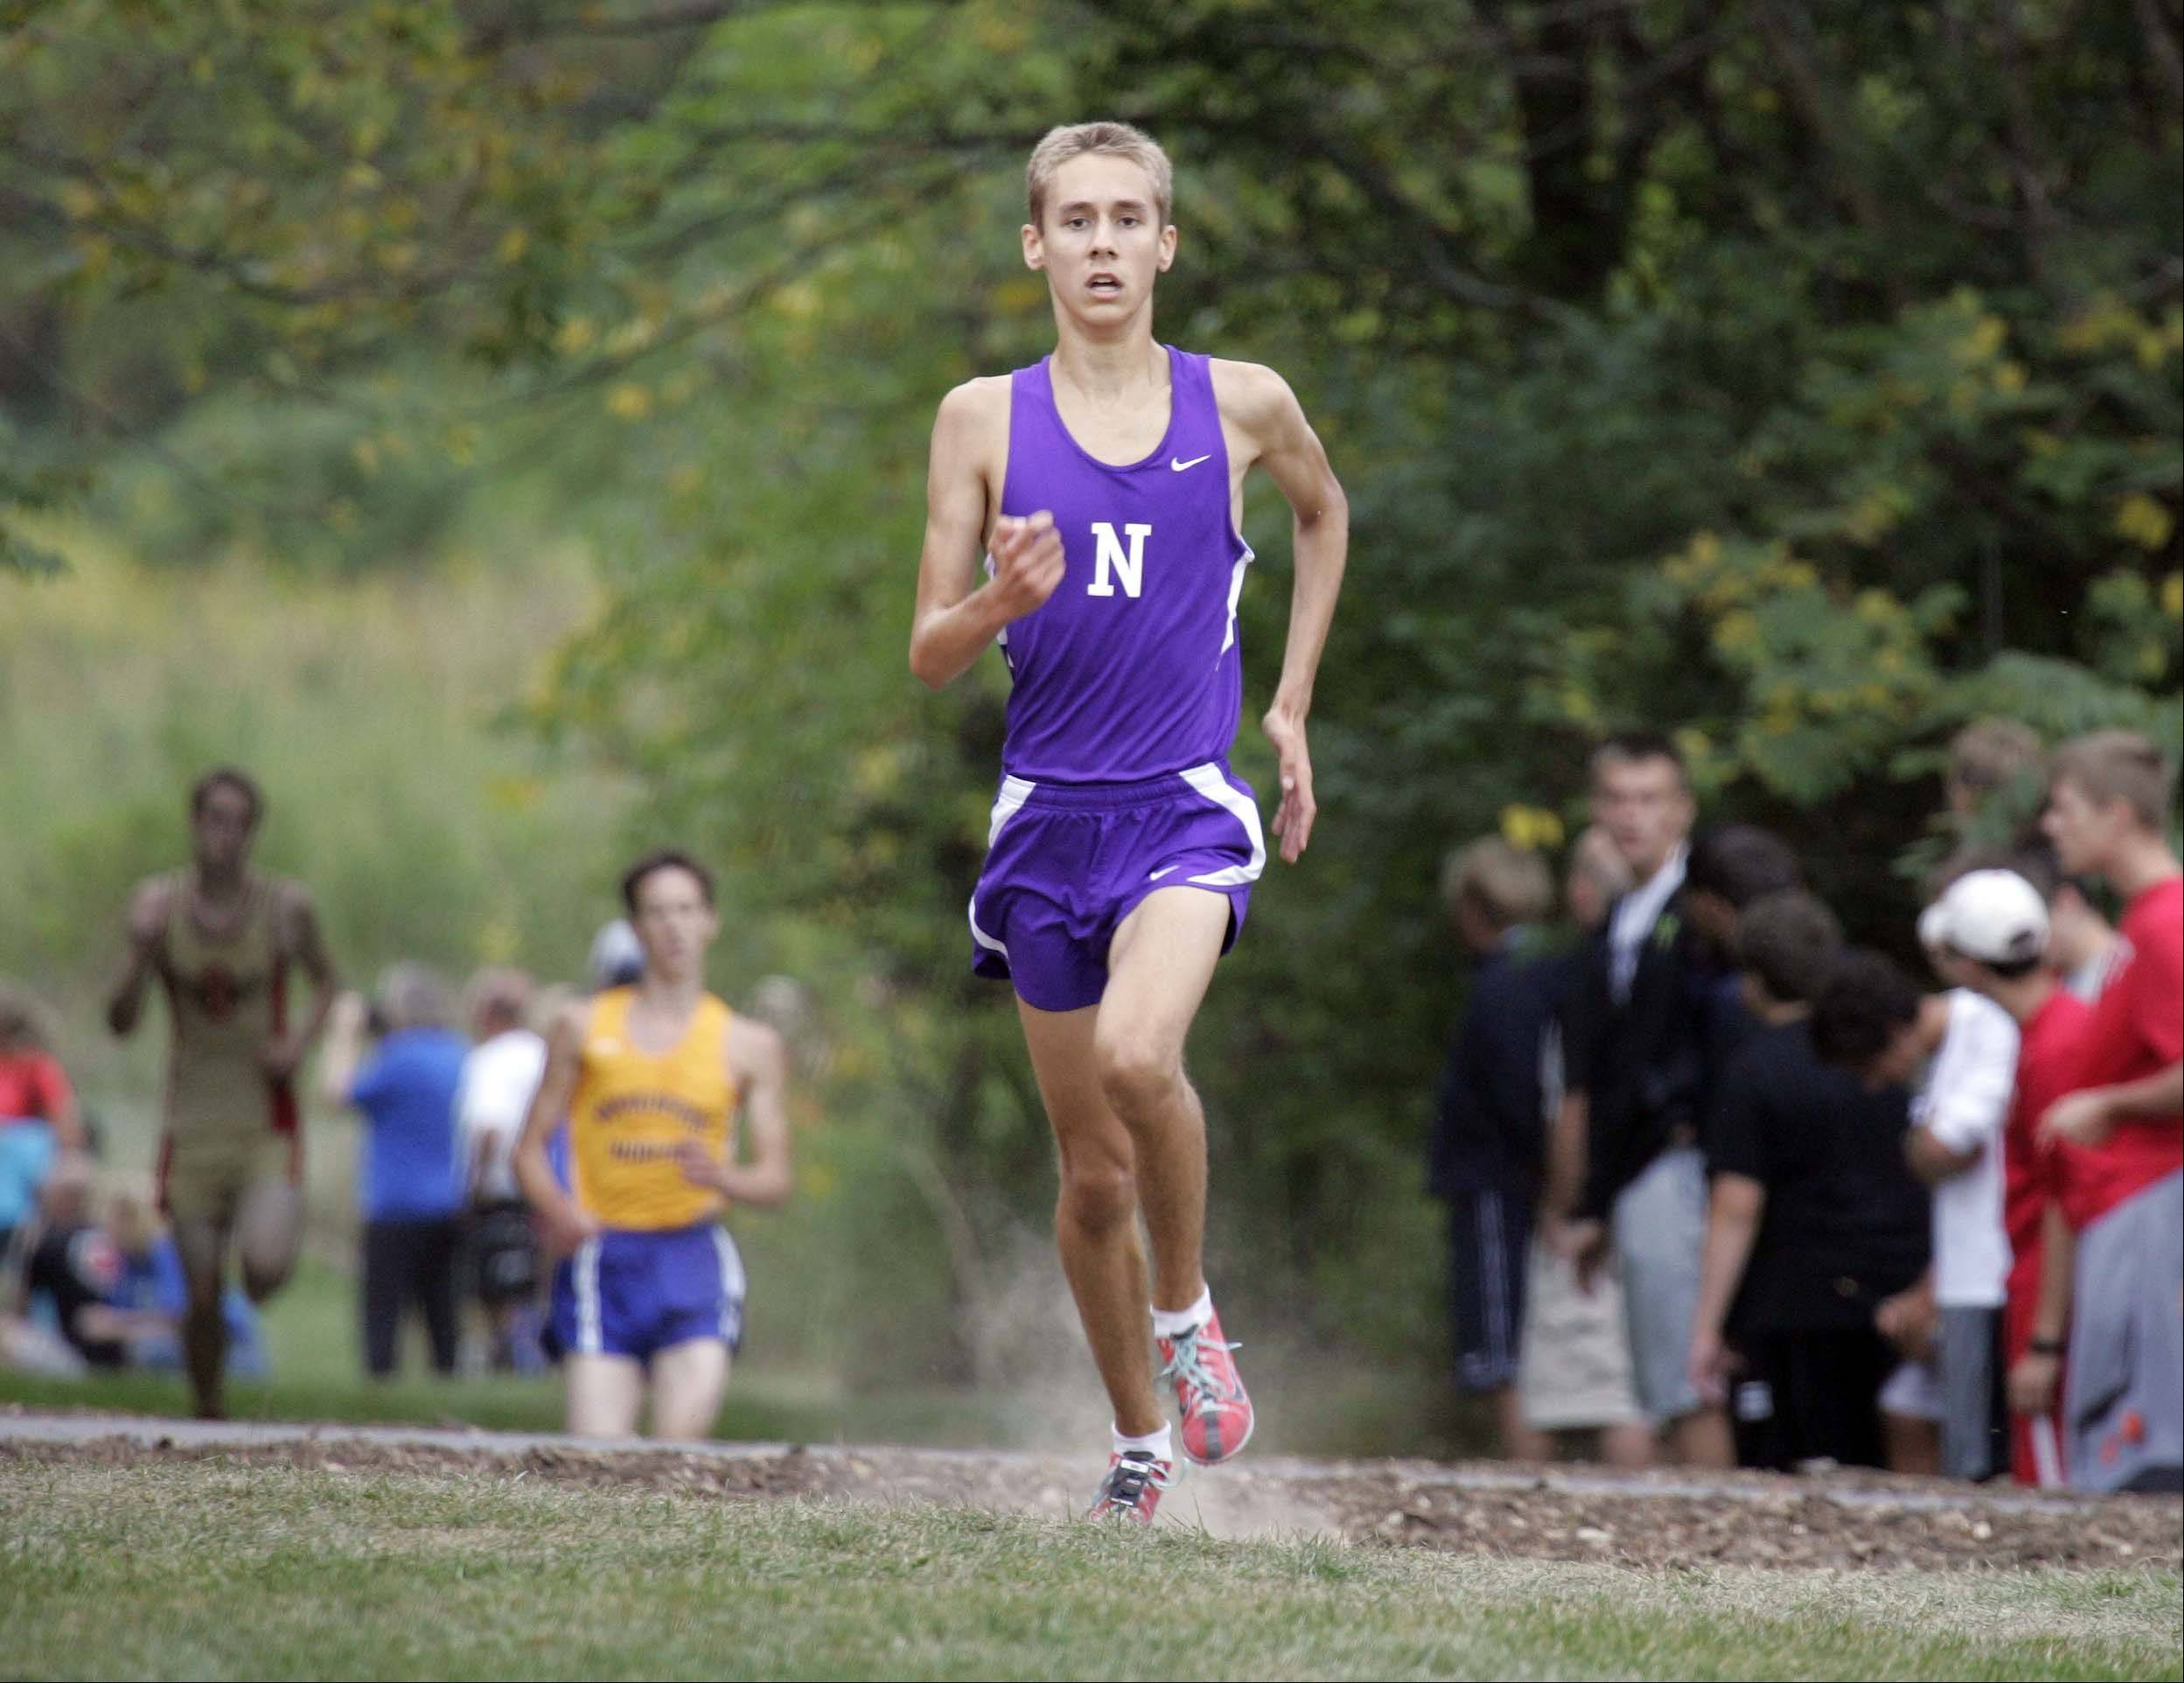 Downers Grove North Ben Eaton races to third place during the boys varsity race at the St. Charles East cross country meet at LeRoy Oakes in St. Charles Saturday September 1, 2012.